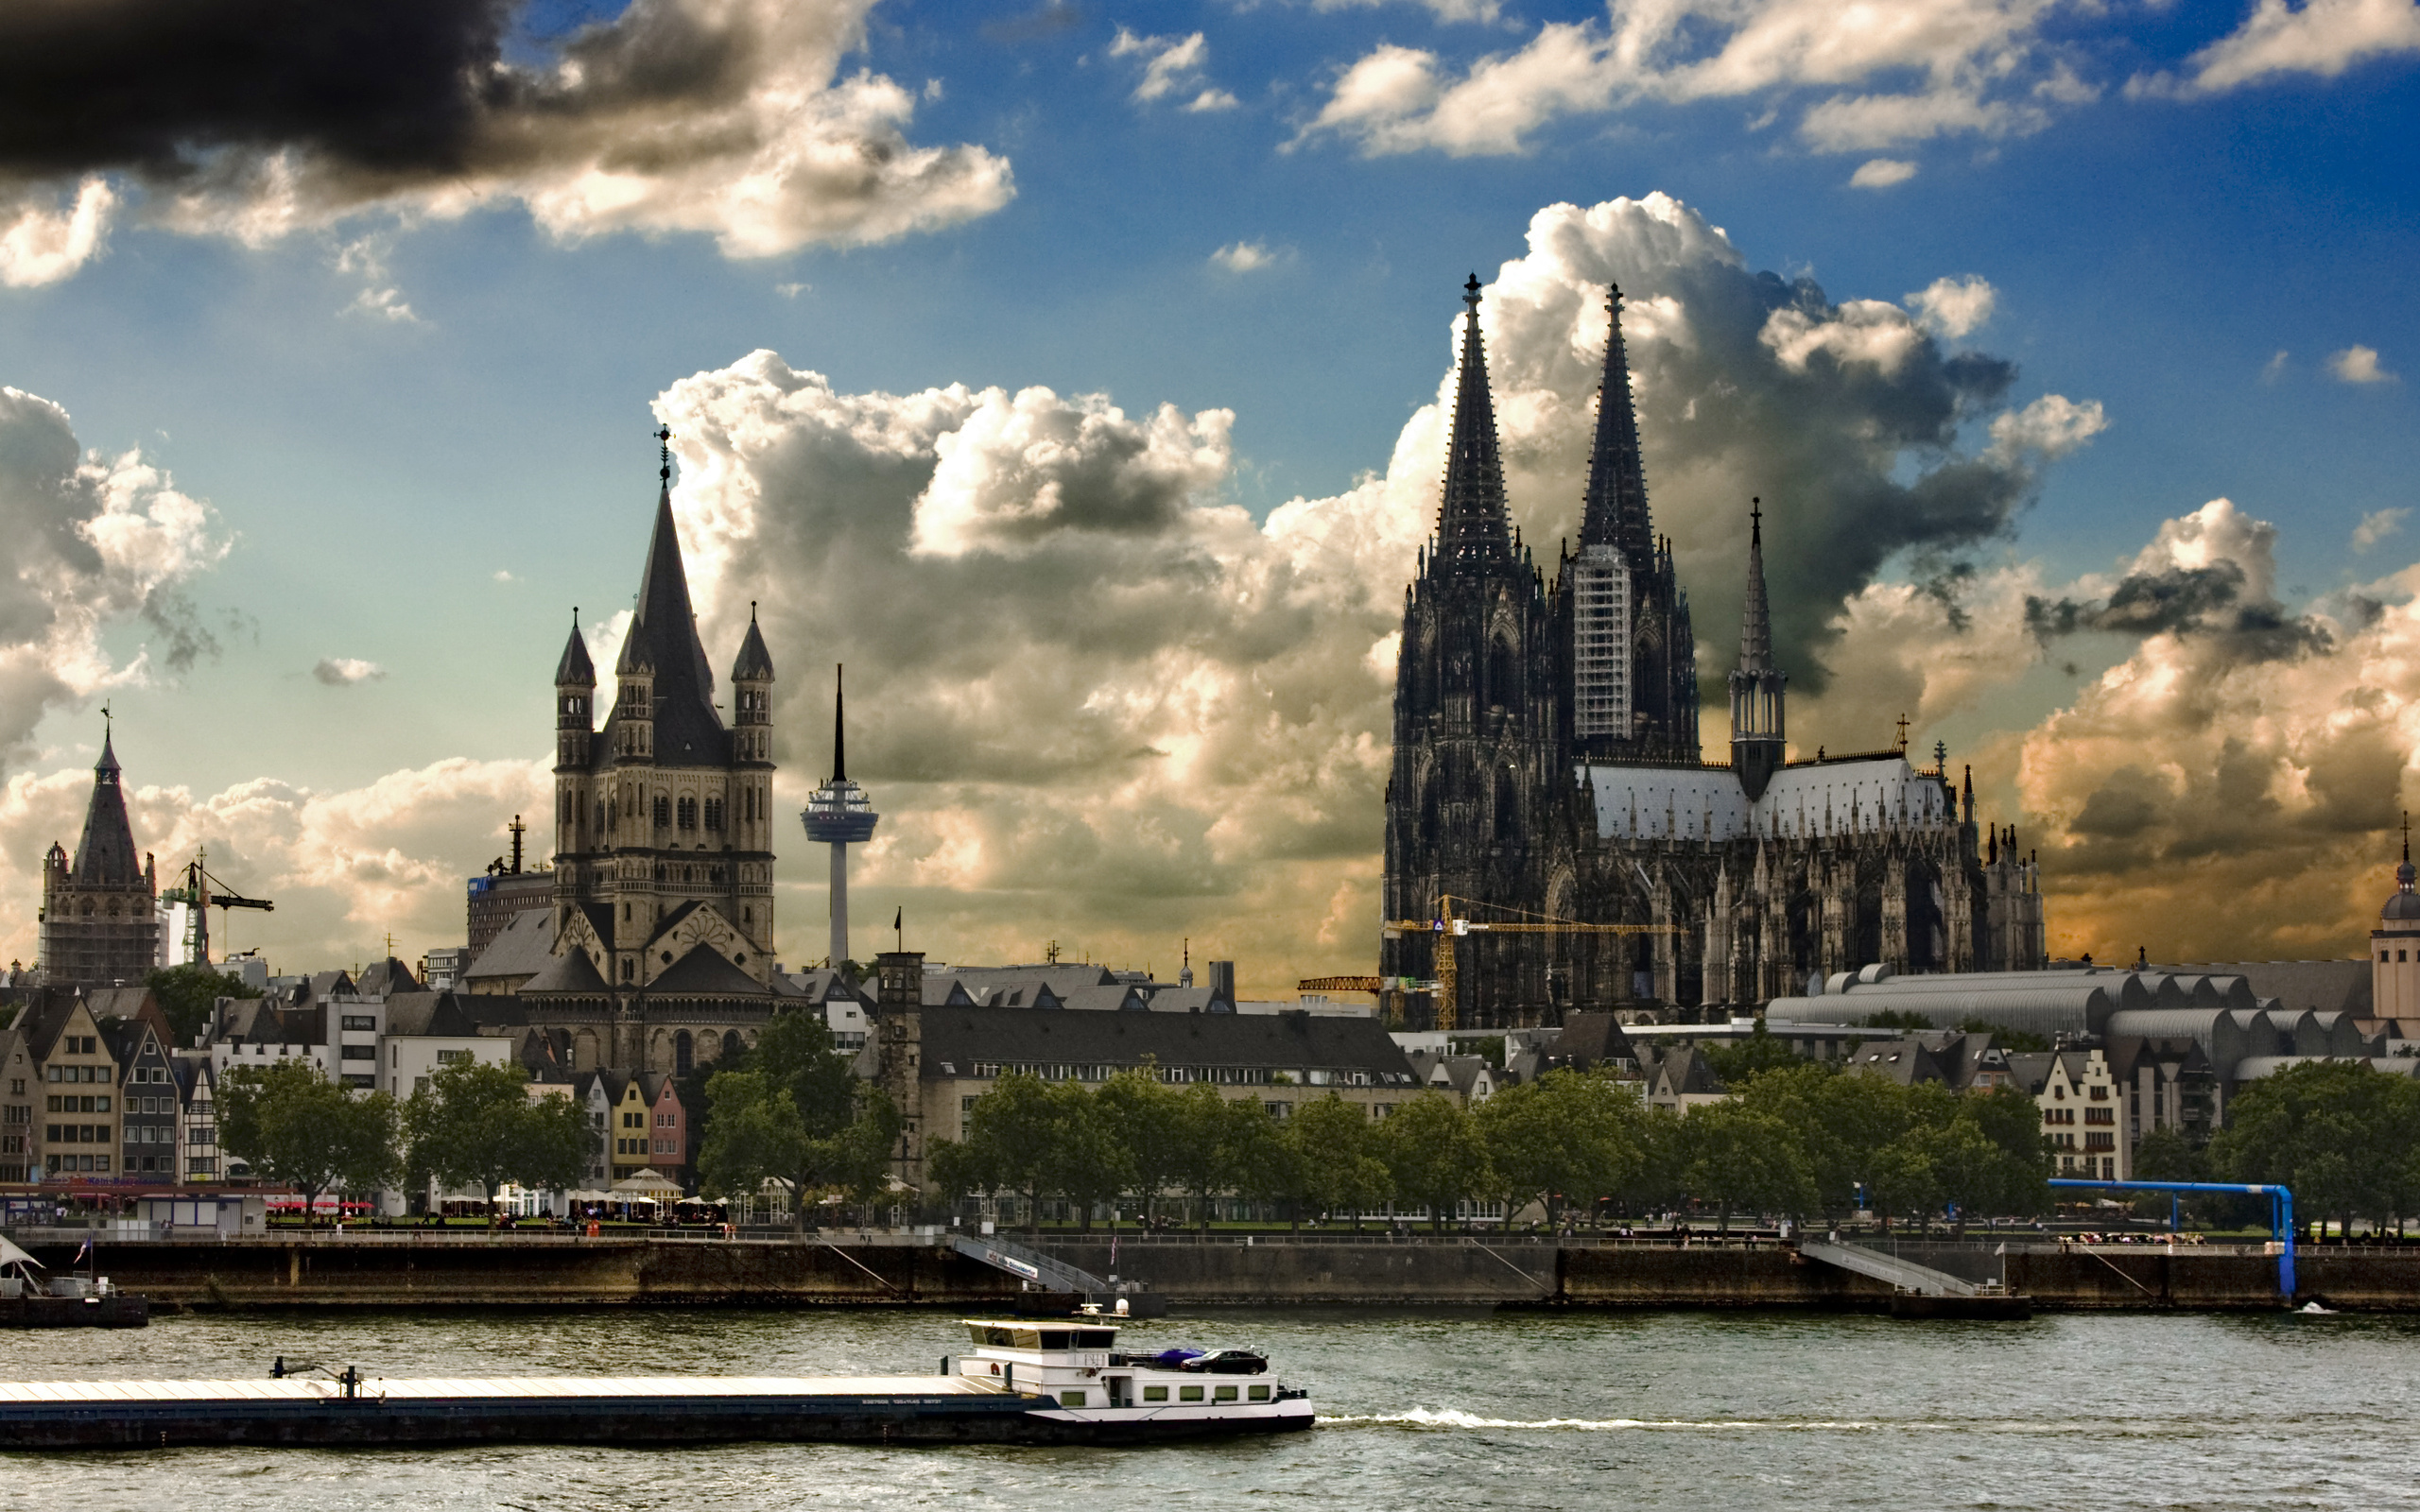 Cathedral Cologne Germany HD Wallpaper Background Image 2560x1600